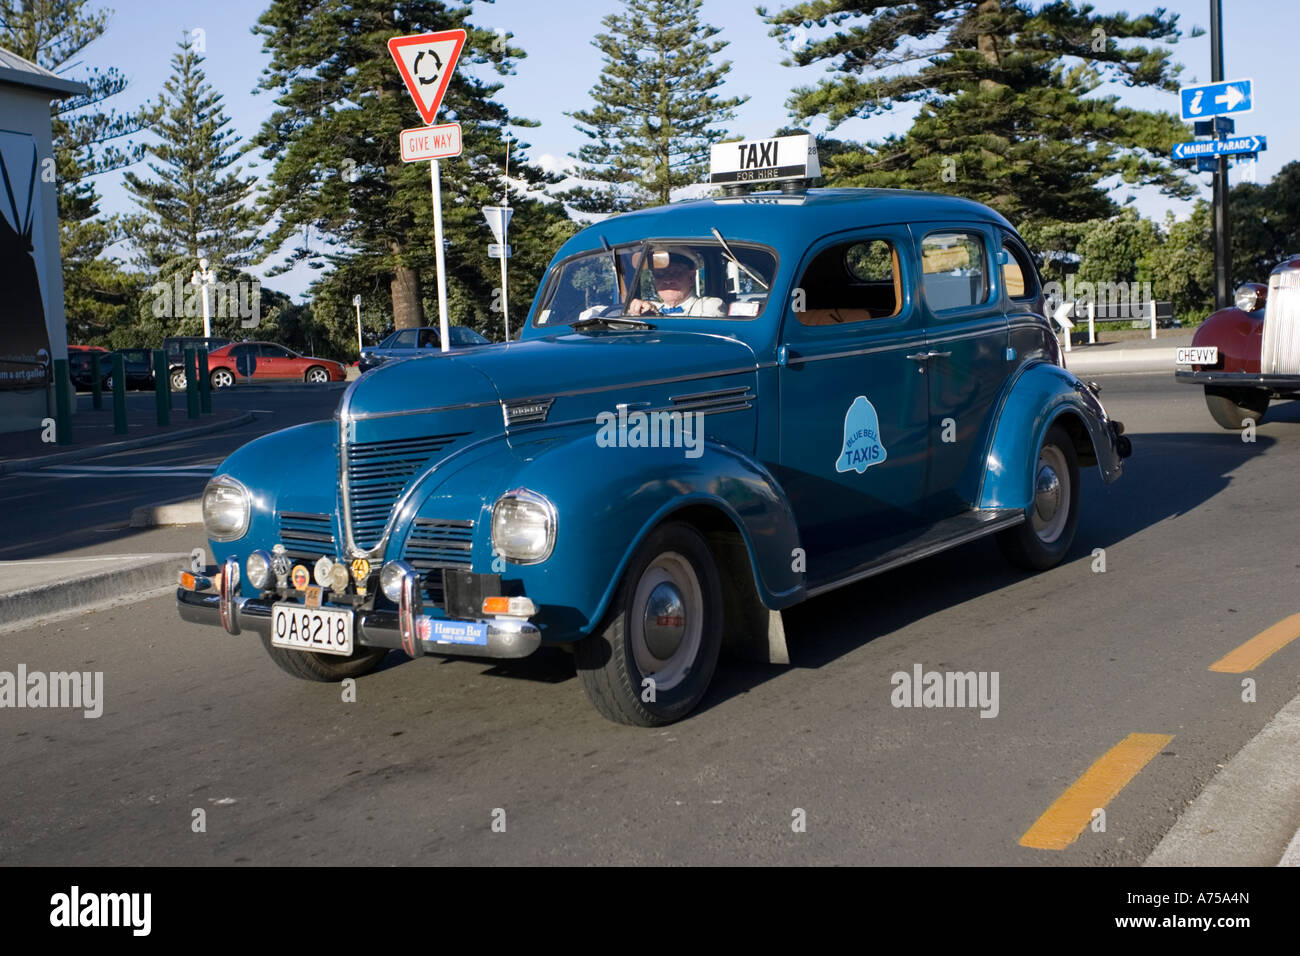 Classic Vintage Dodge Motor Car Blue Bell Taxis For Hire On Road